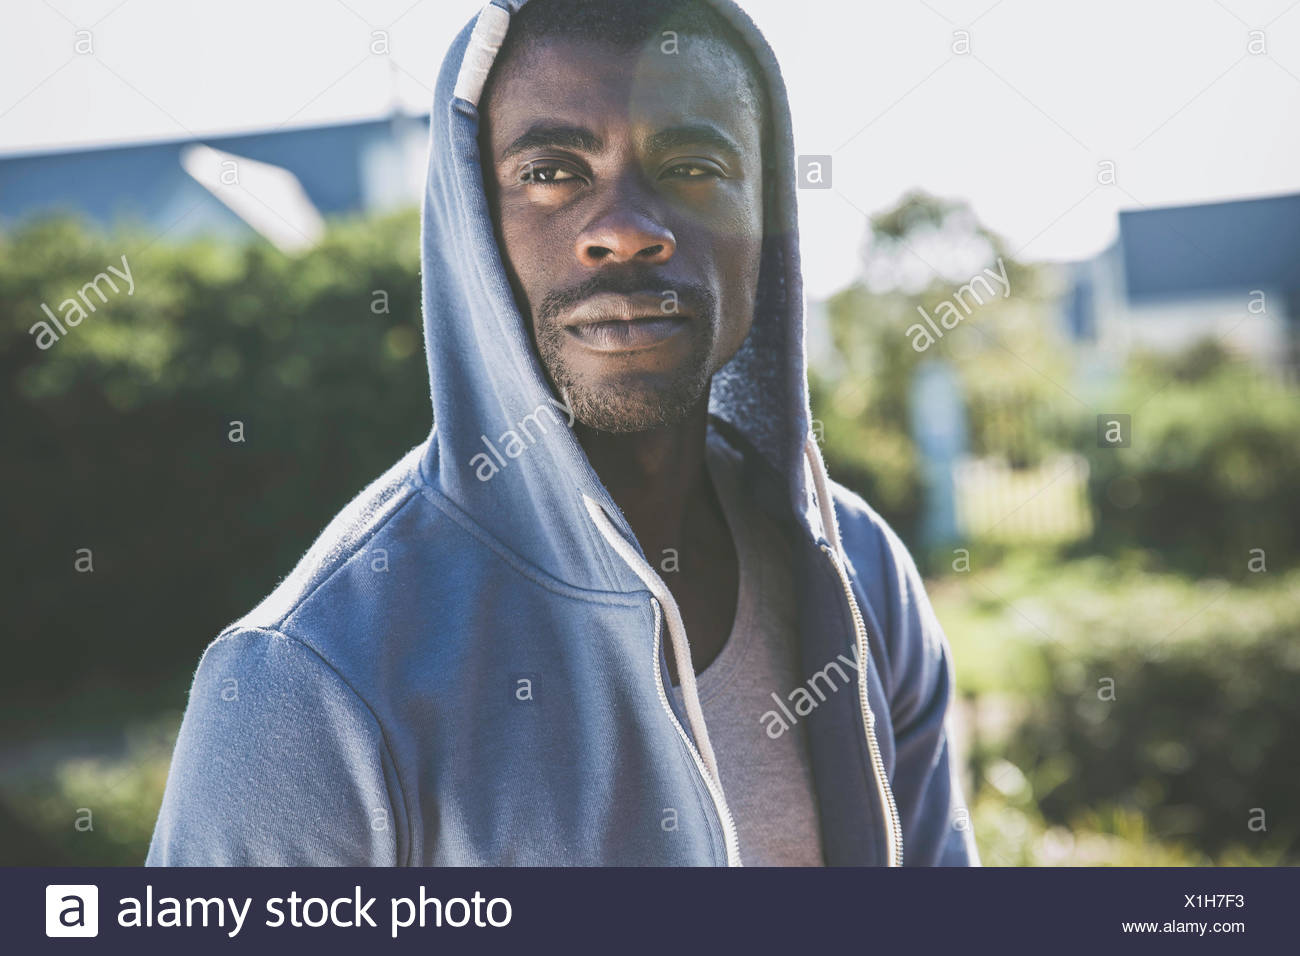 Portrait of man wearing hooded top looking away - Stock Image